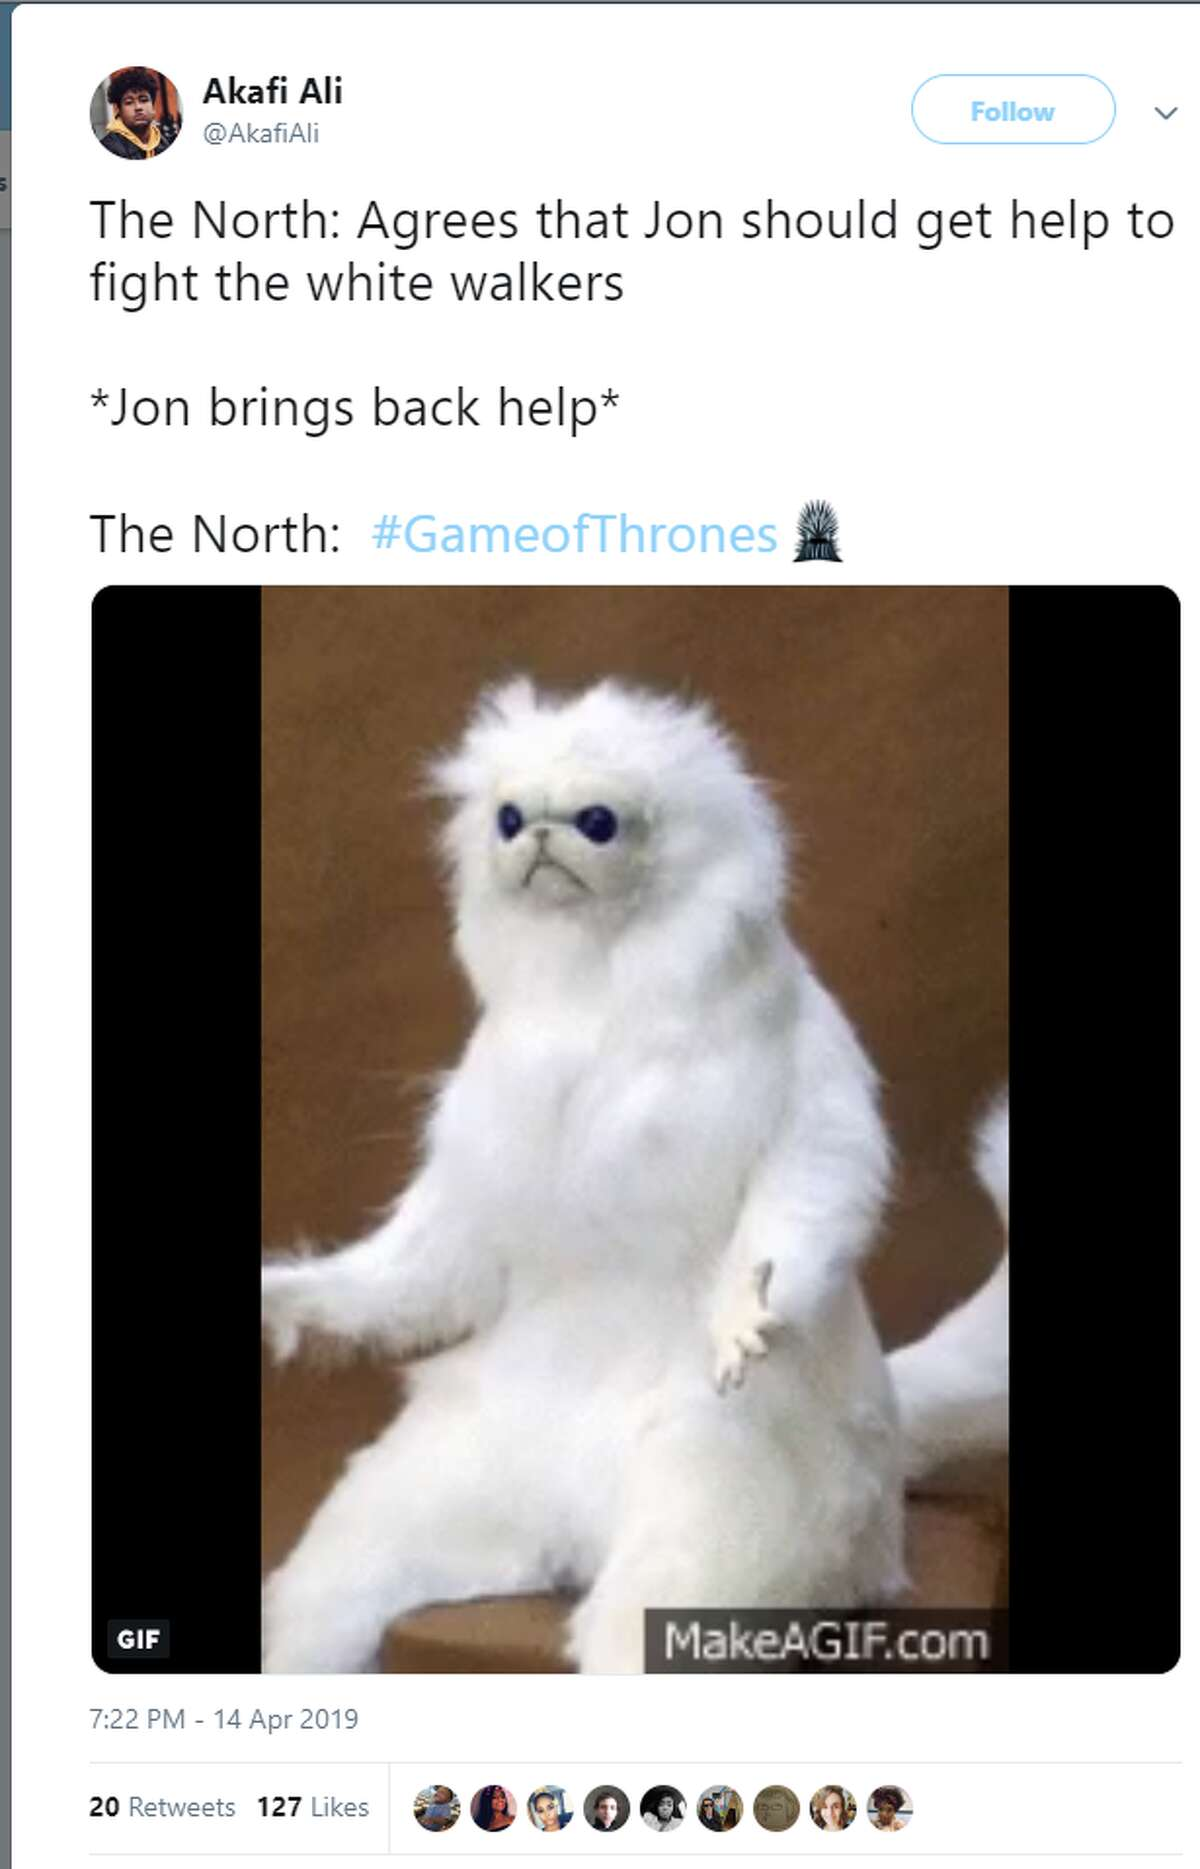 """""""The North: Agrees that Jon should get help to fight the white walkers *Jon brings back help* The North: #GameofThrones"""" Twitter account: @AkafiAli"""